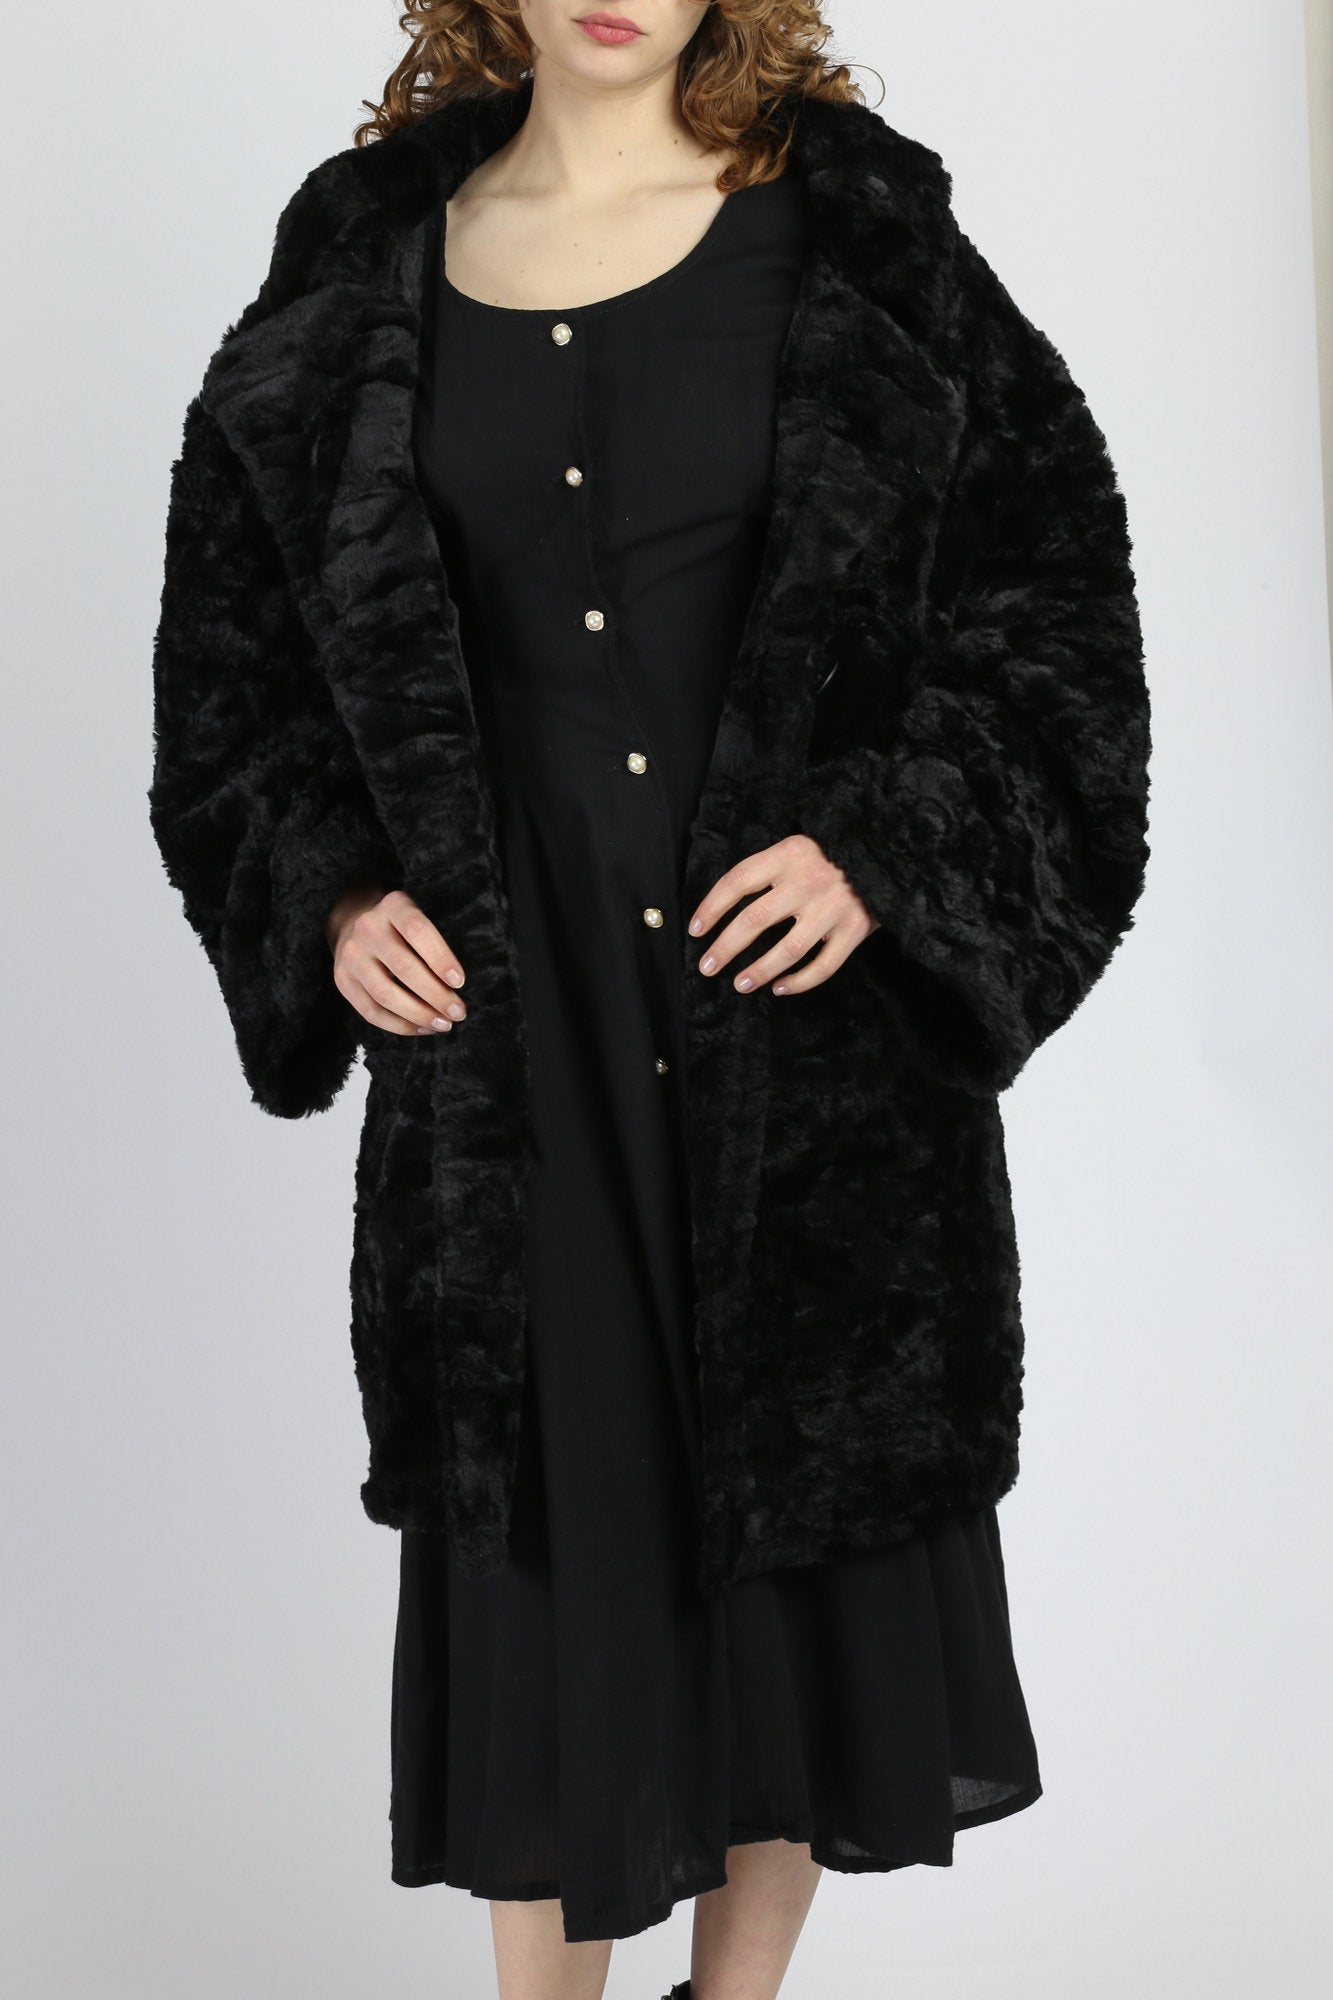 Vintage Express Plush Black Faux Fur Coat - Medium